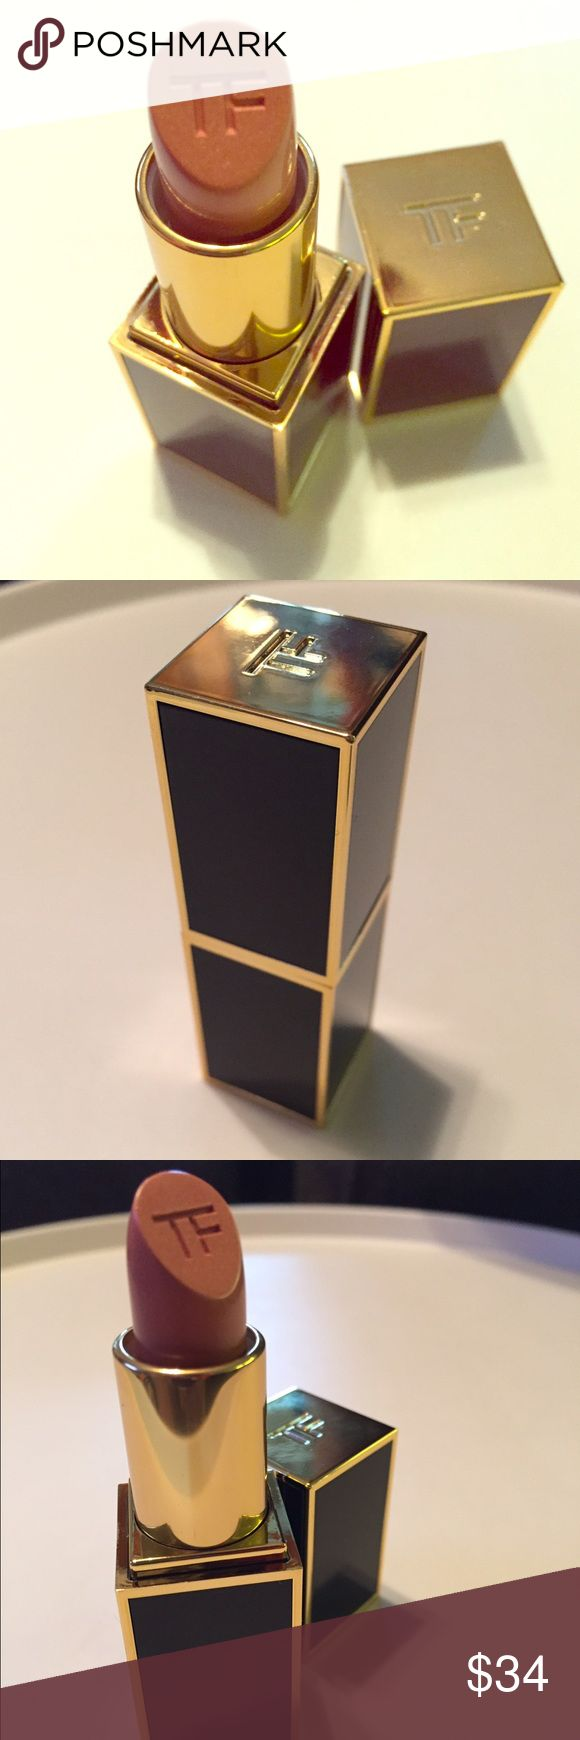 BRAND NEW! Tom Ford lipstick Color name: Guilty pleasure. Never been used. Not one mark on lipstick. Original price shown with tax Tom Ford Makeup Lipstick